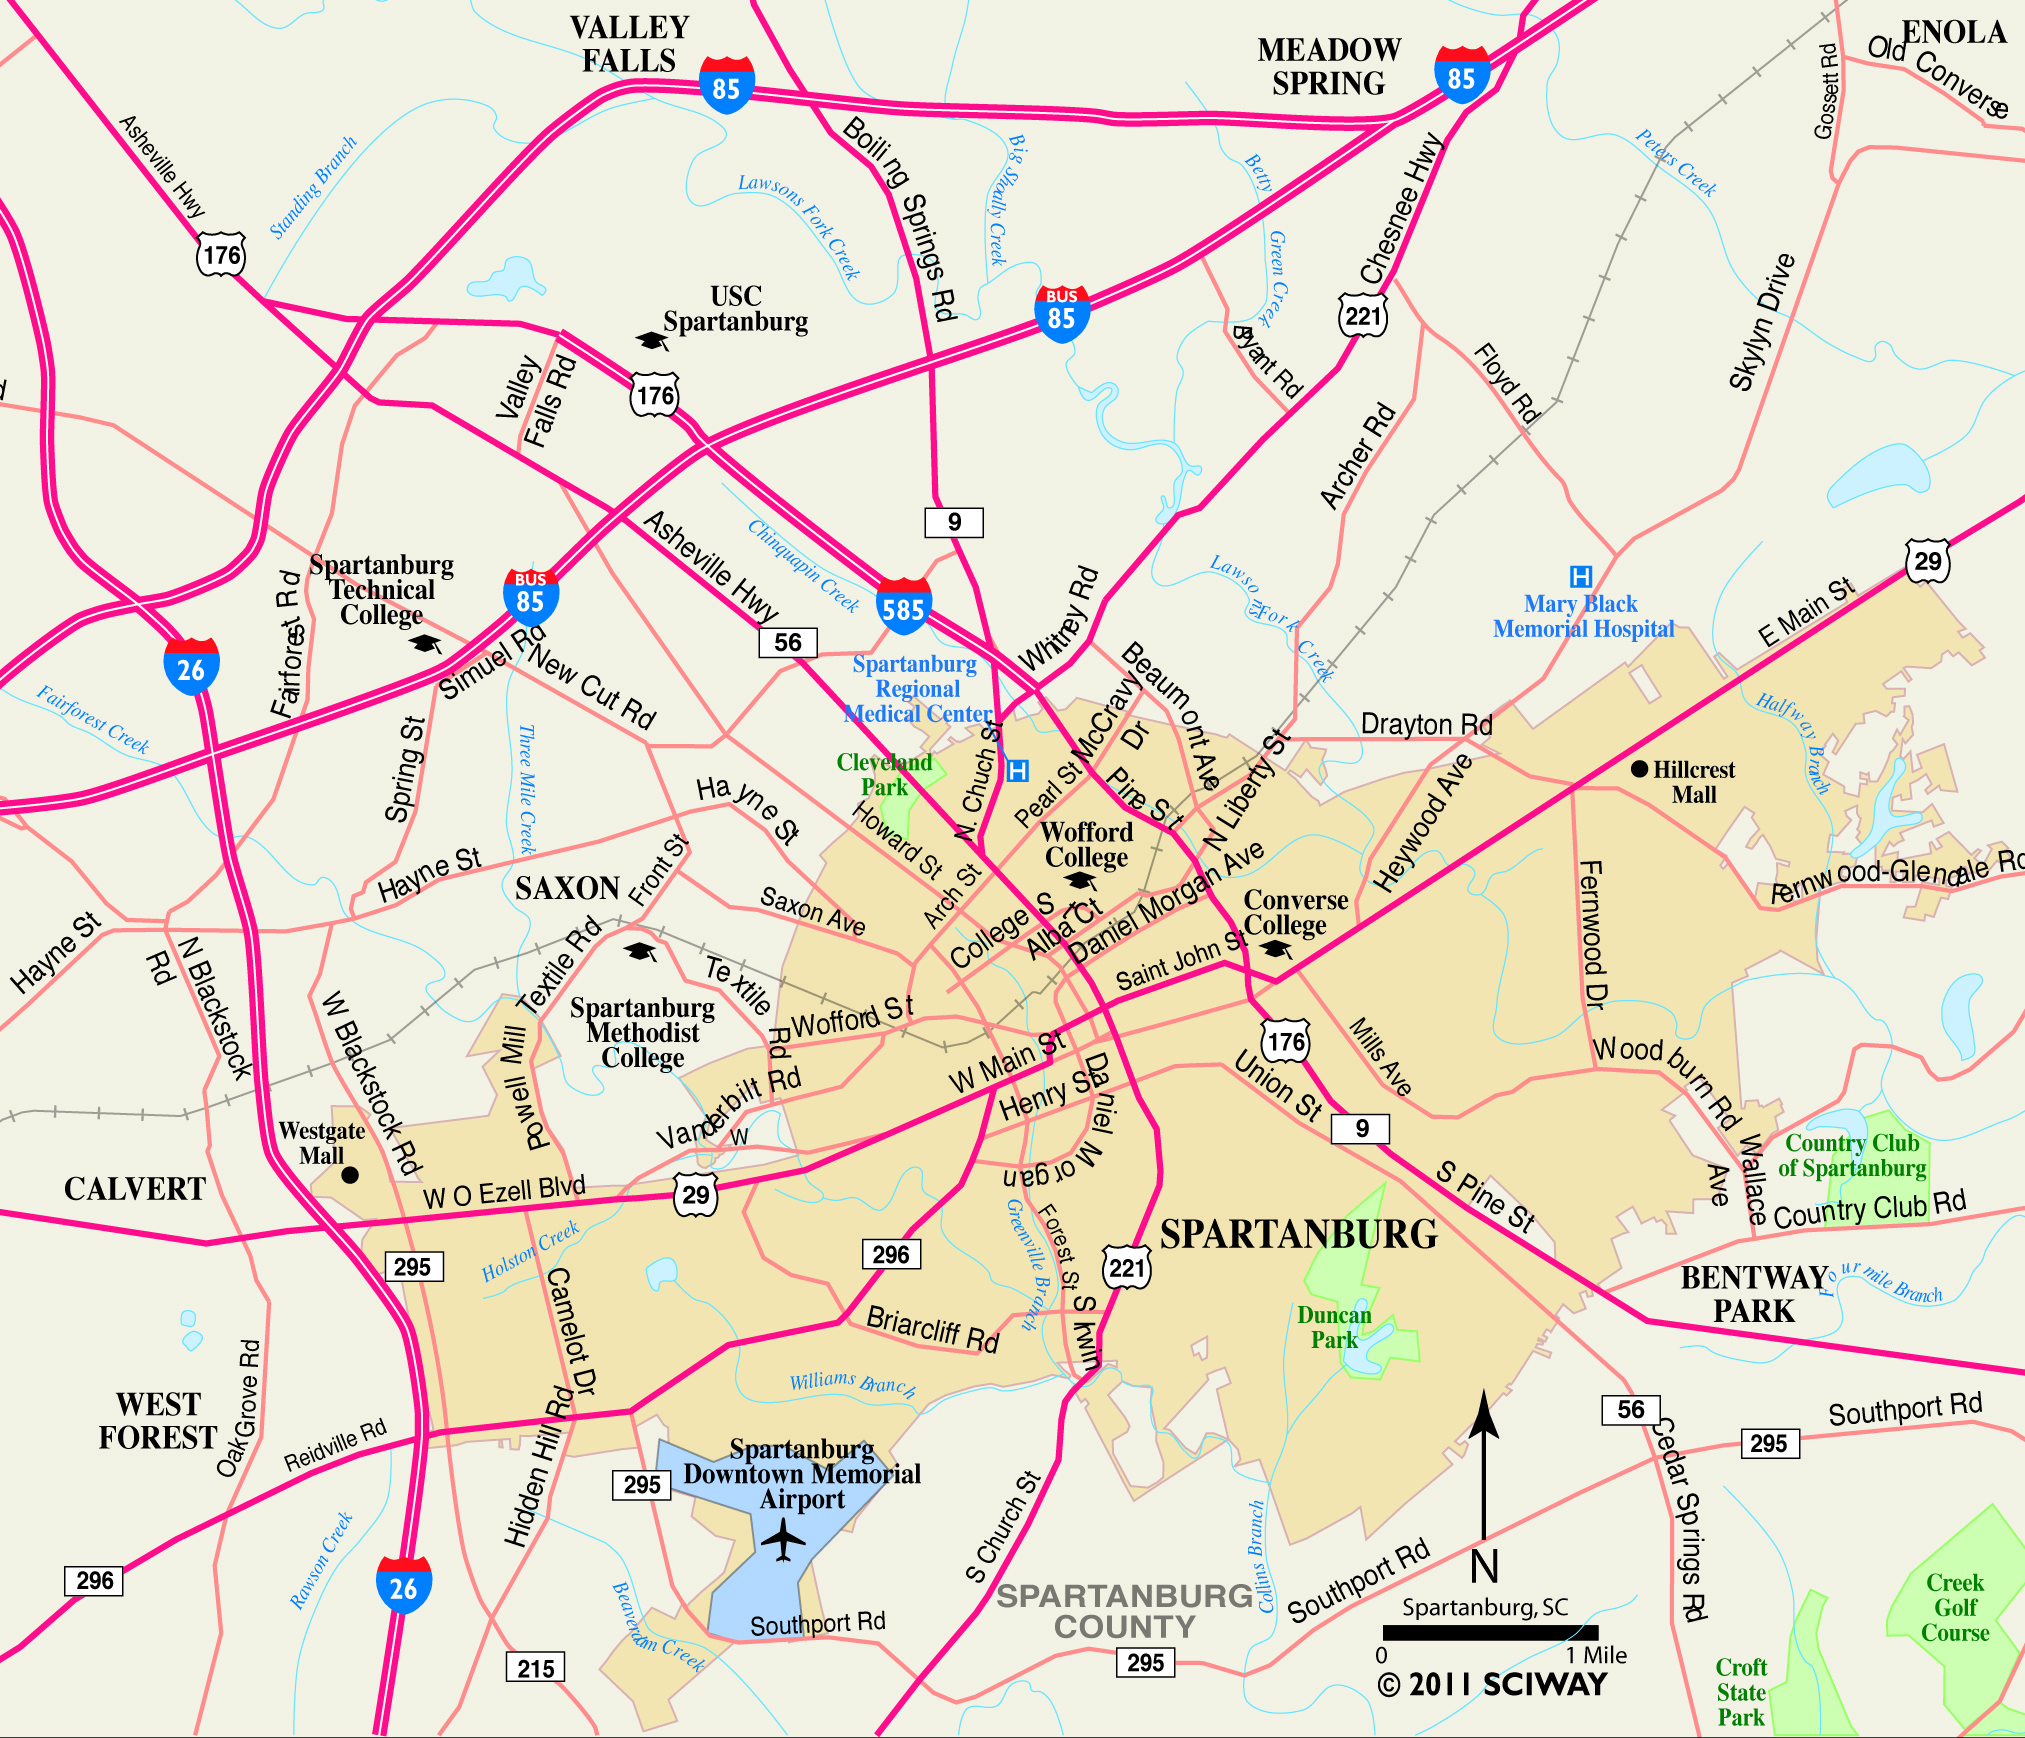 nc road map with Spartanburg South Carolina Map on Blue ridge parkway map nc besides Map Place Names further Lift Only Mtr Station Entrances also Charlotte Zip Code Map also Manchester Museum Late.